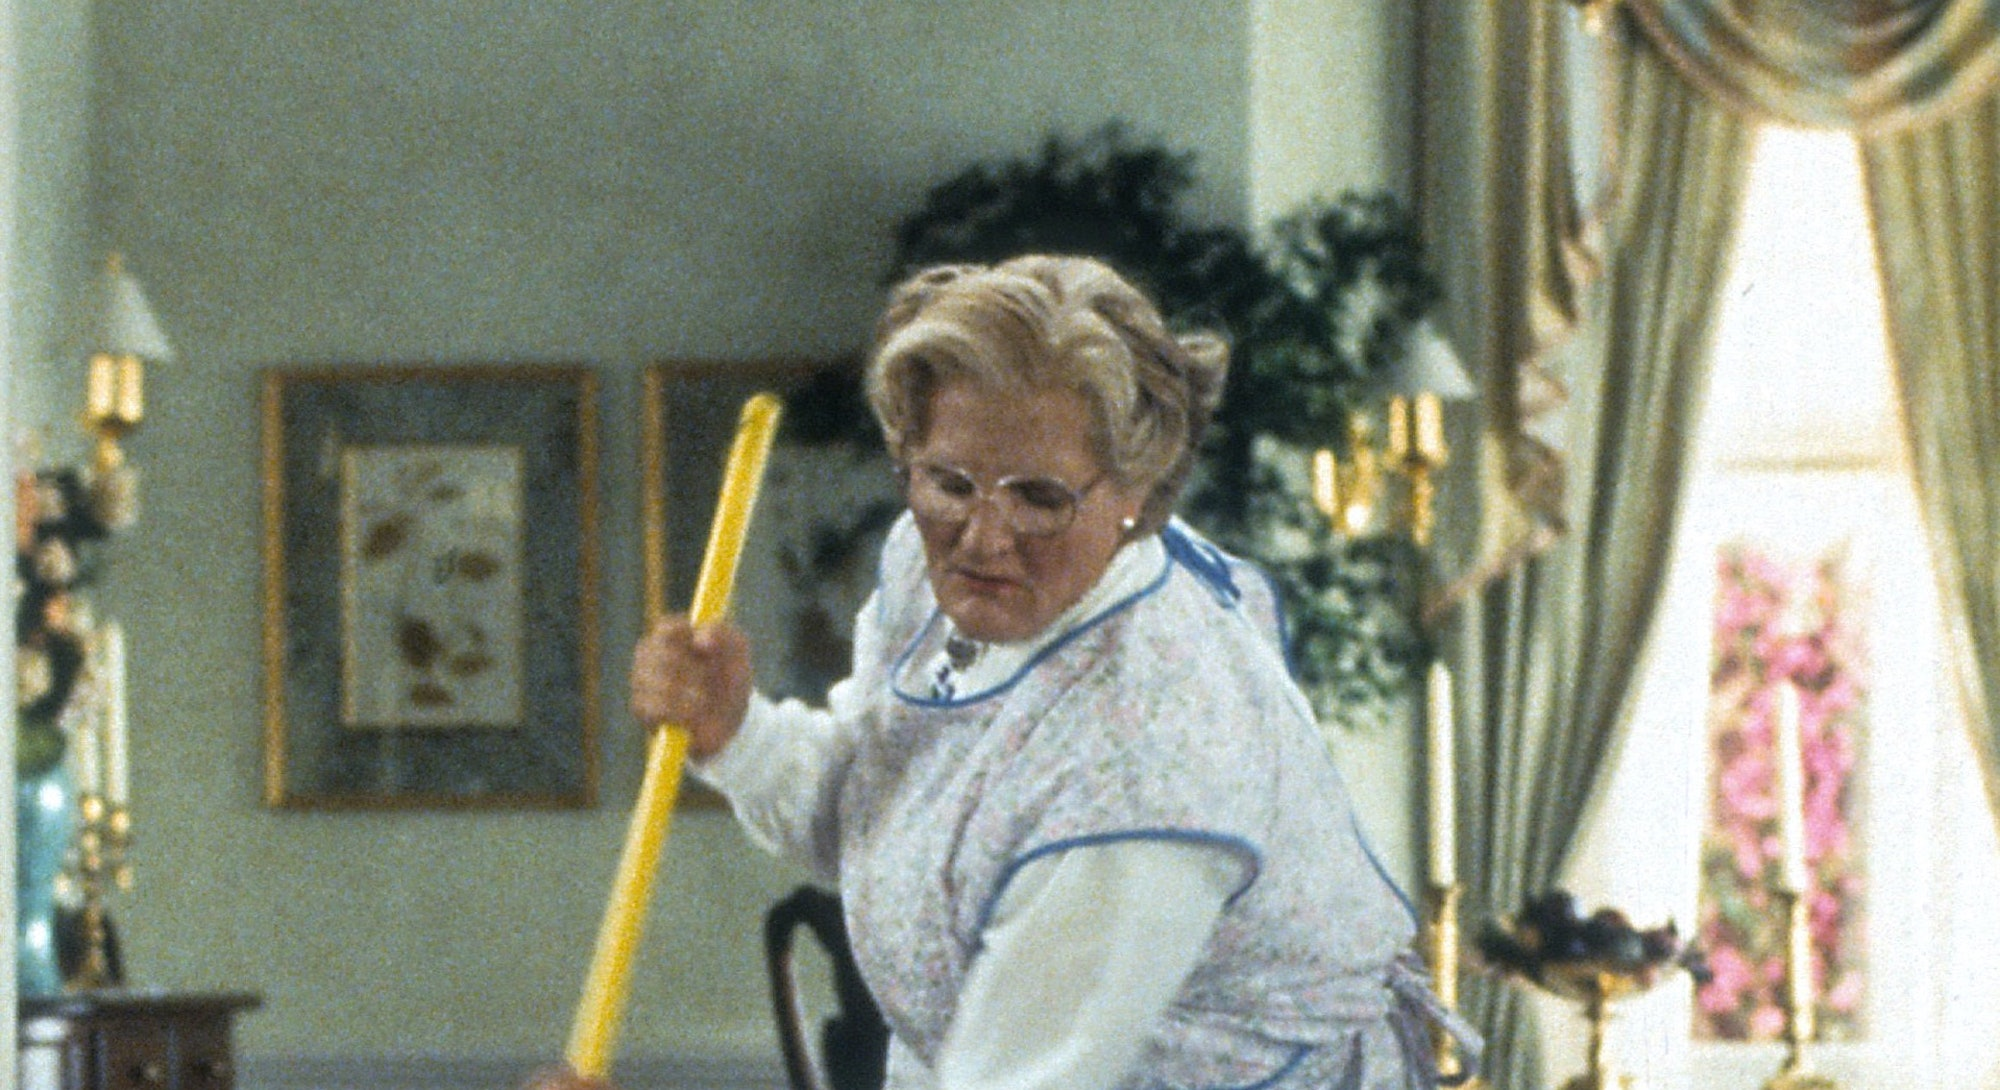 Mrs. Doubtfire will be available to stream on Disney+ in August 2021.